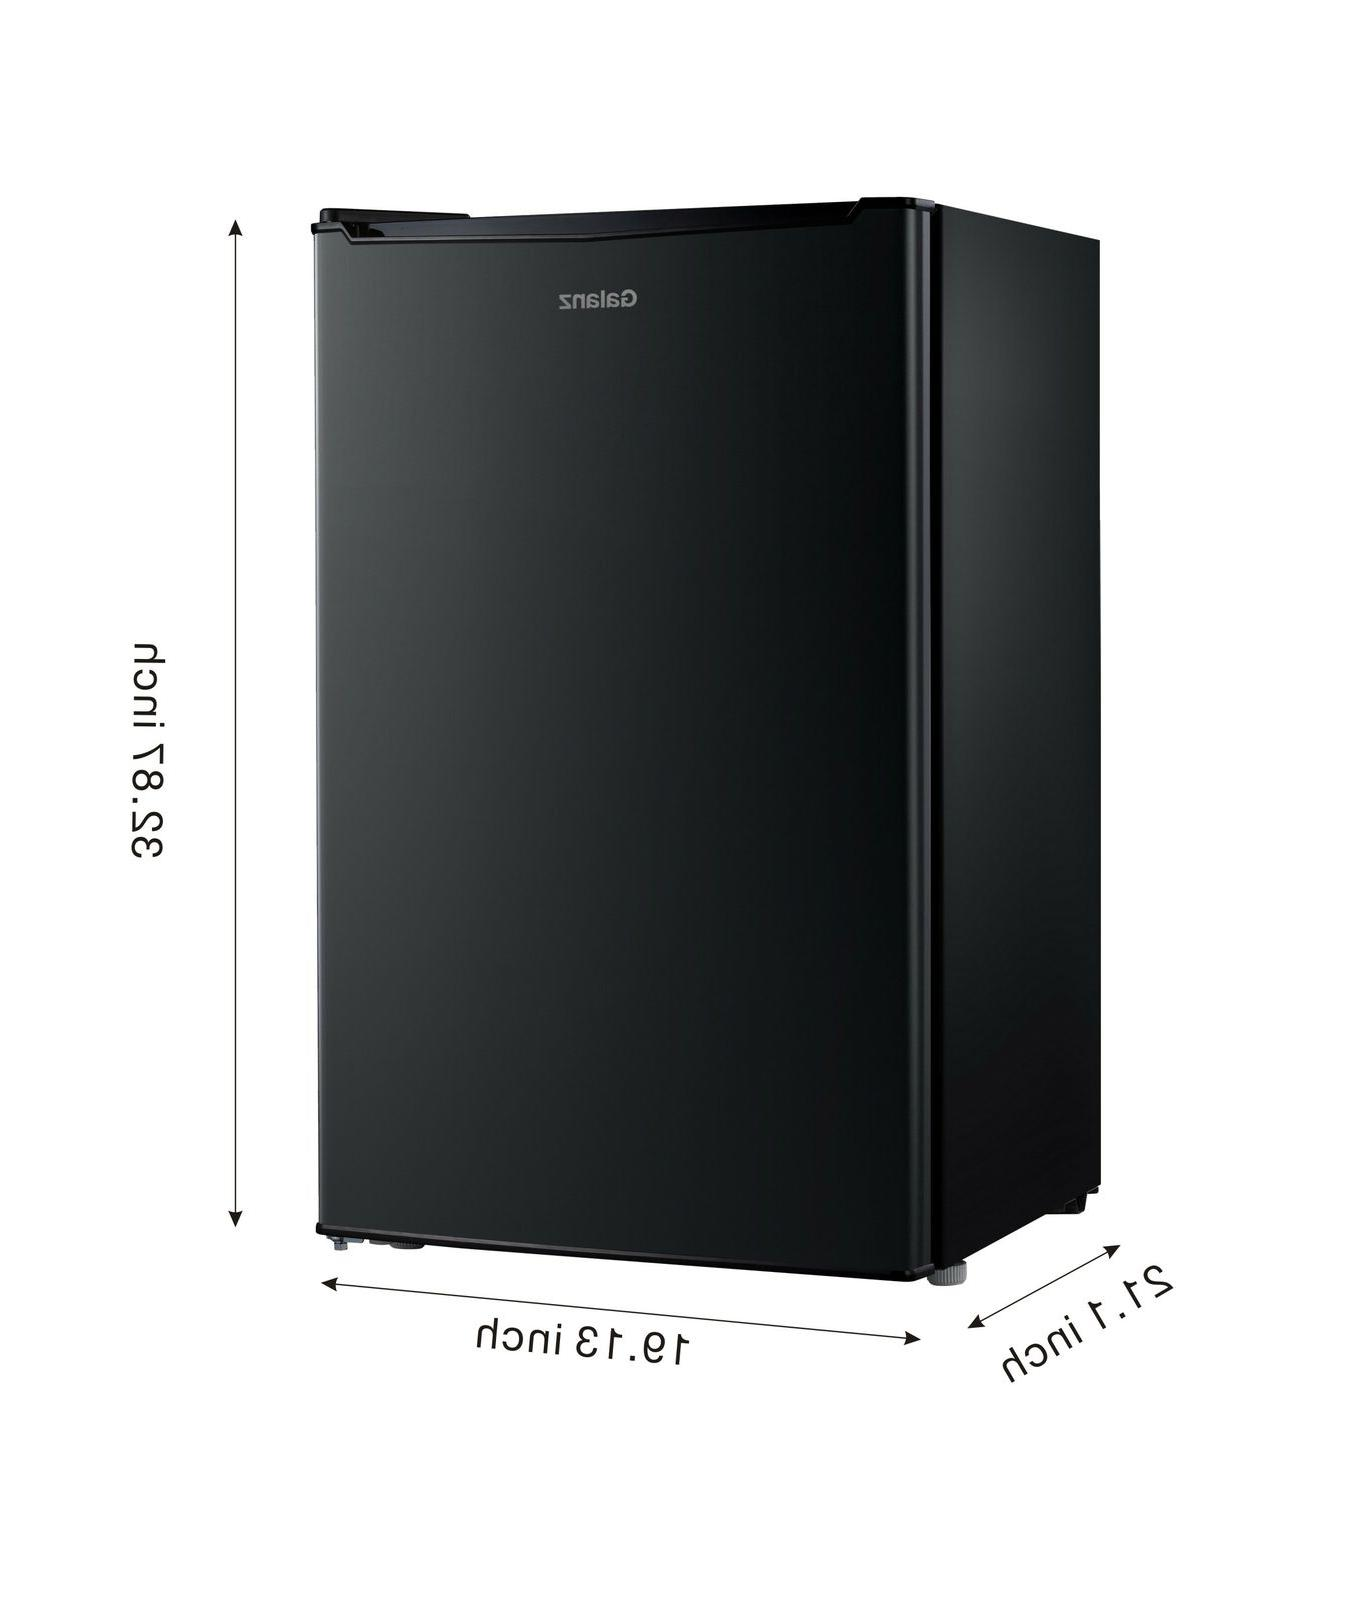 New Galanz 3.5 cu. ft. Compact Single-door Mini Fridge Best